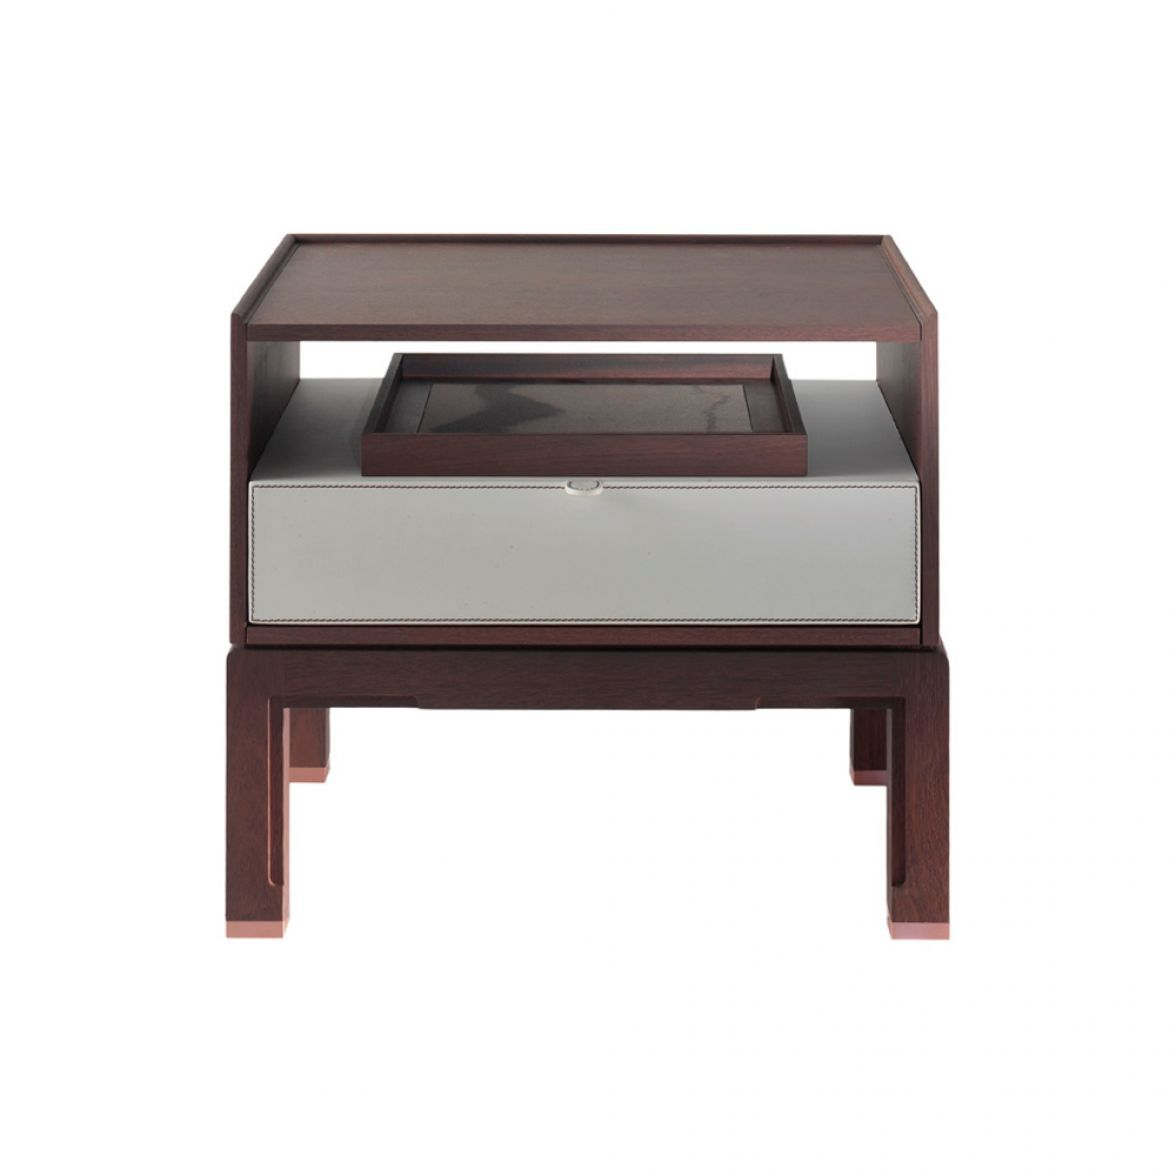 Idys bedside table